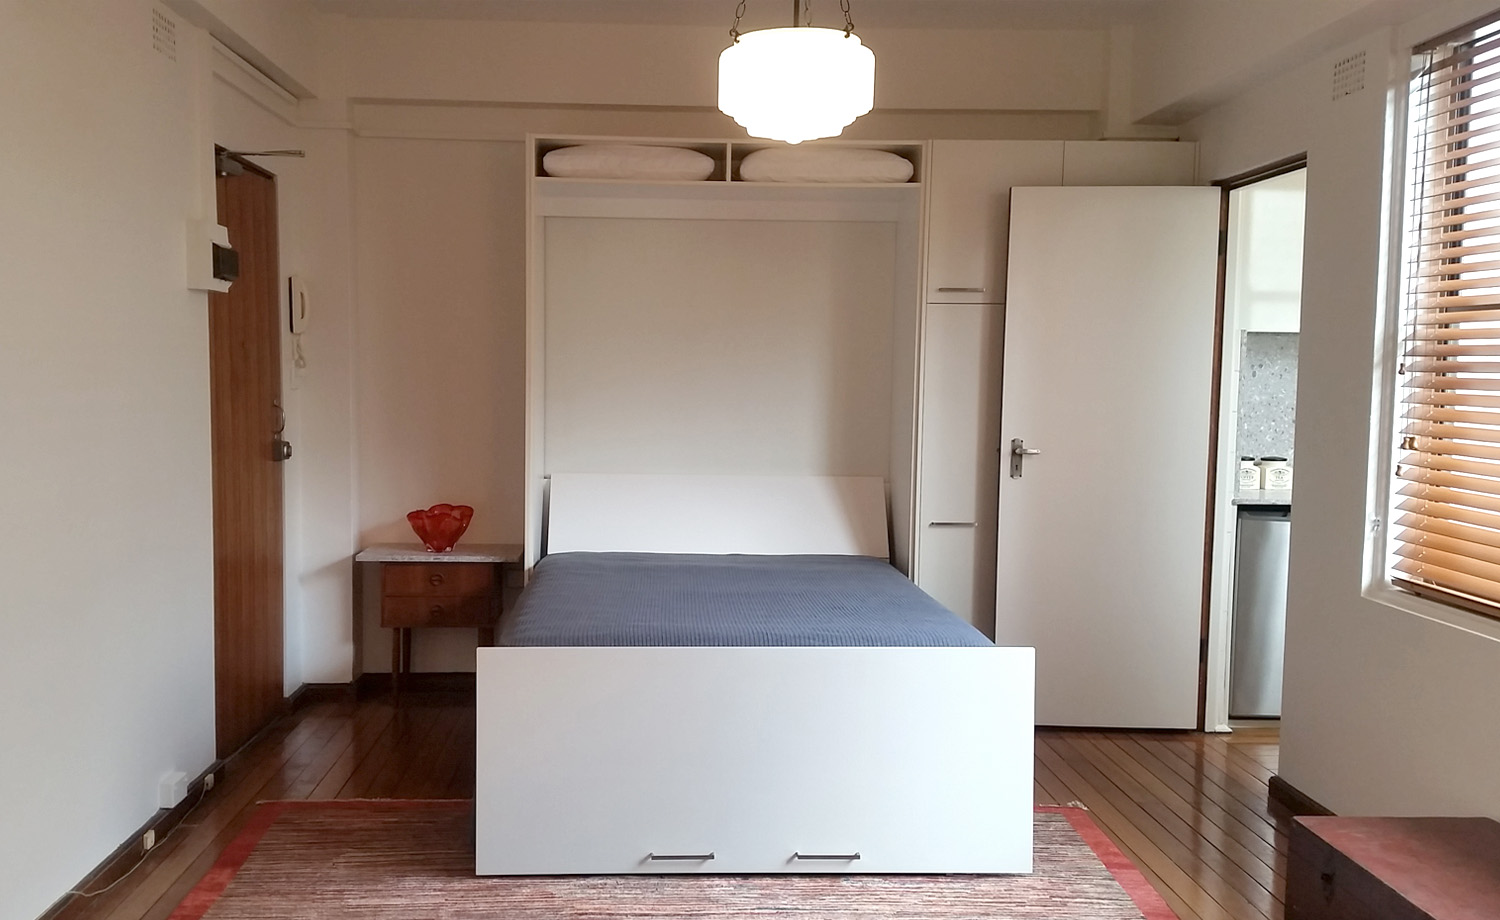 City-Kitchens_Potts-Point-2_Apartment-Renovation_Bed-04.jpg